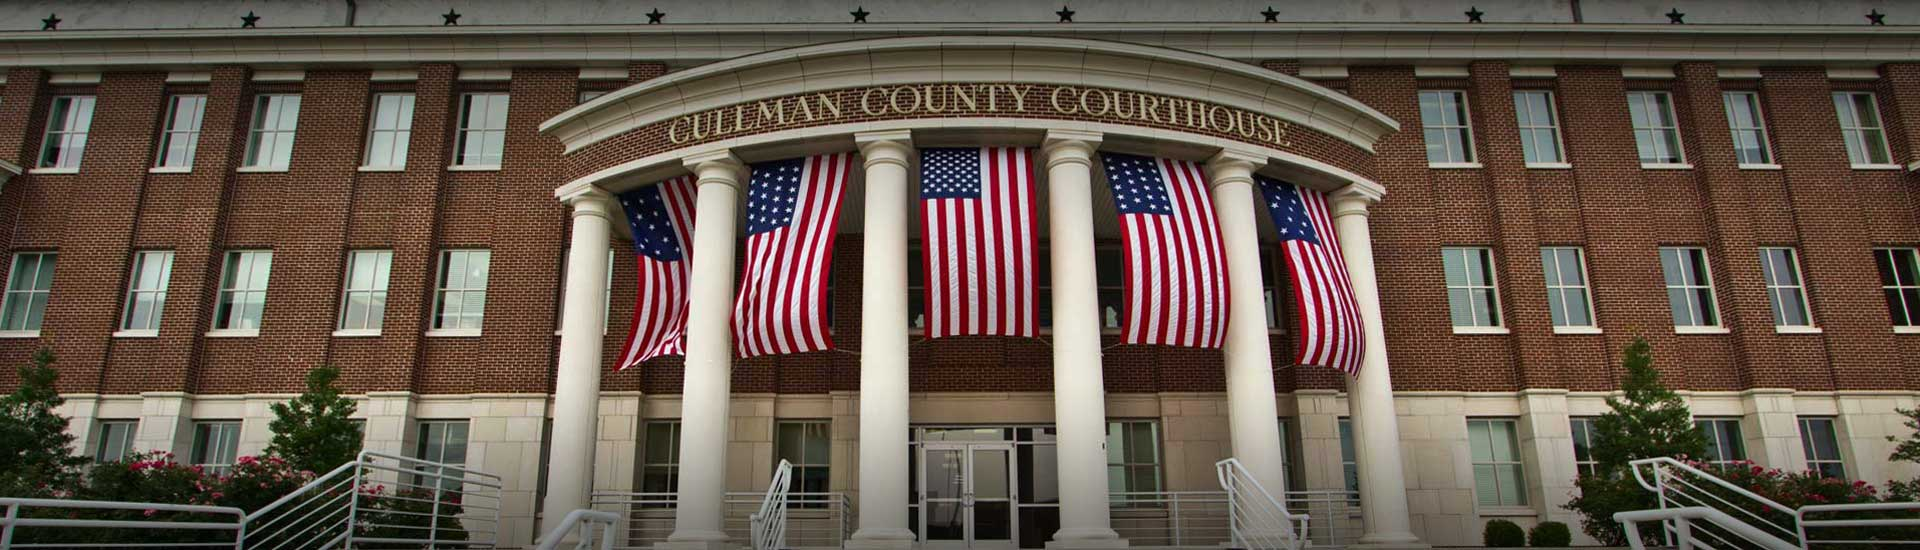 Cullman County Courthouse with Flags Displayed